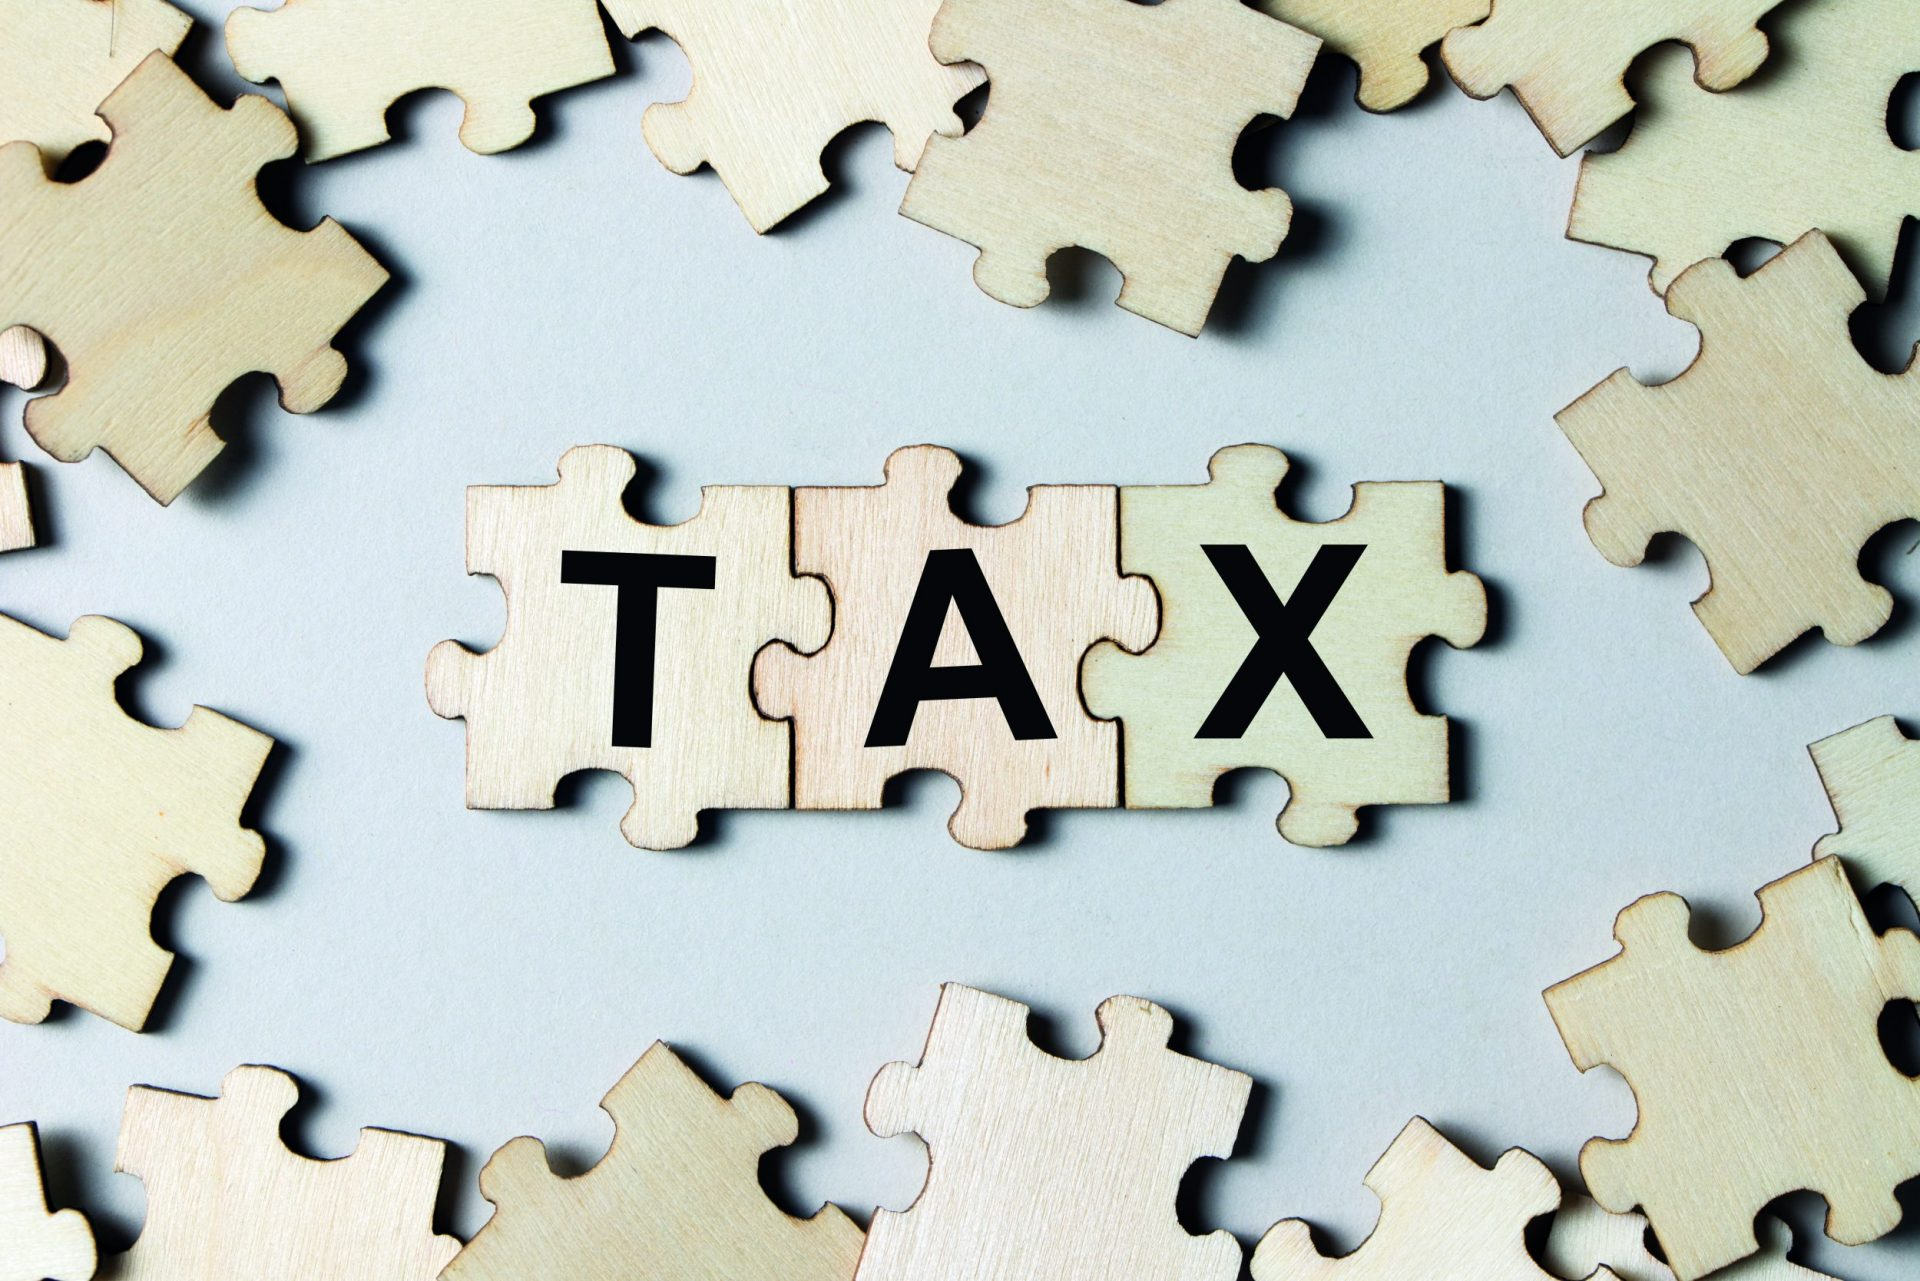 puzzle-pieces-with-word-tax-PZ8AVVN